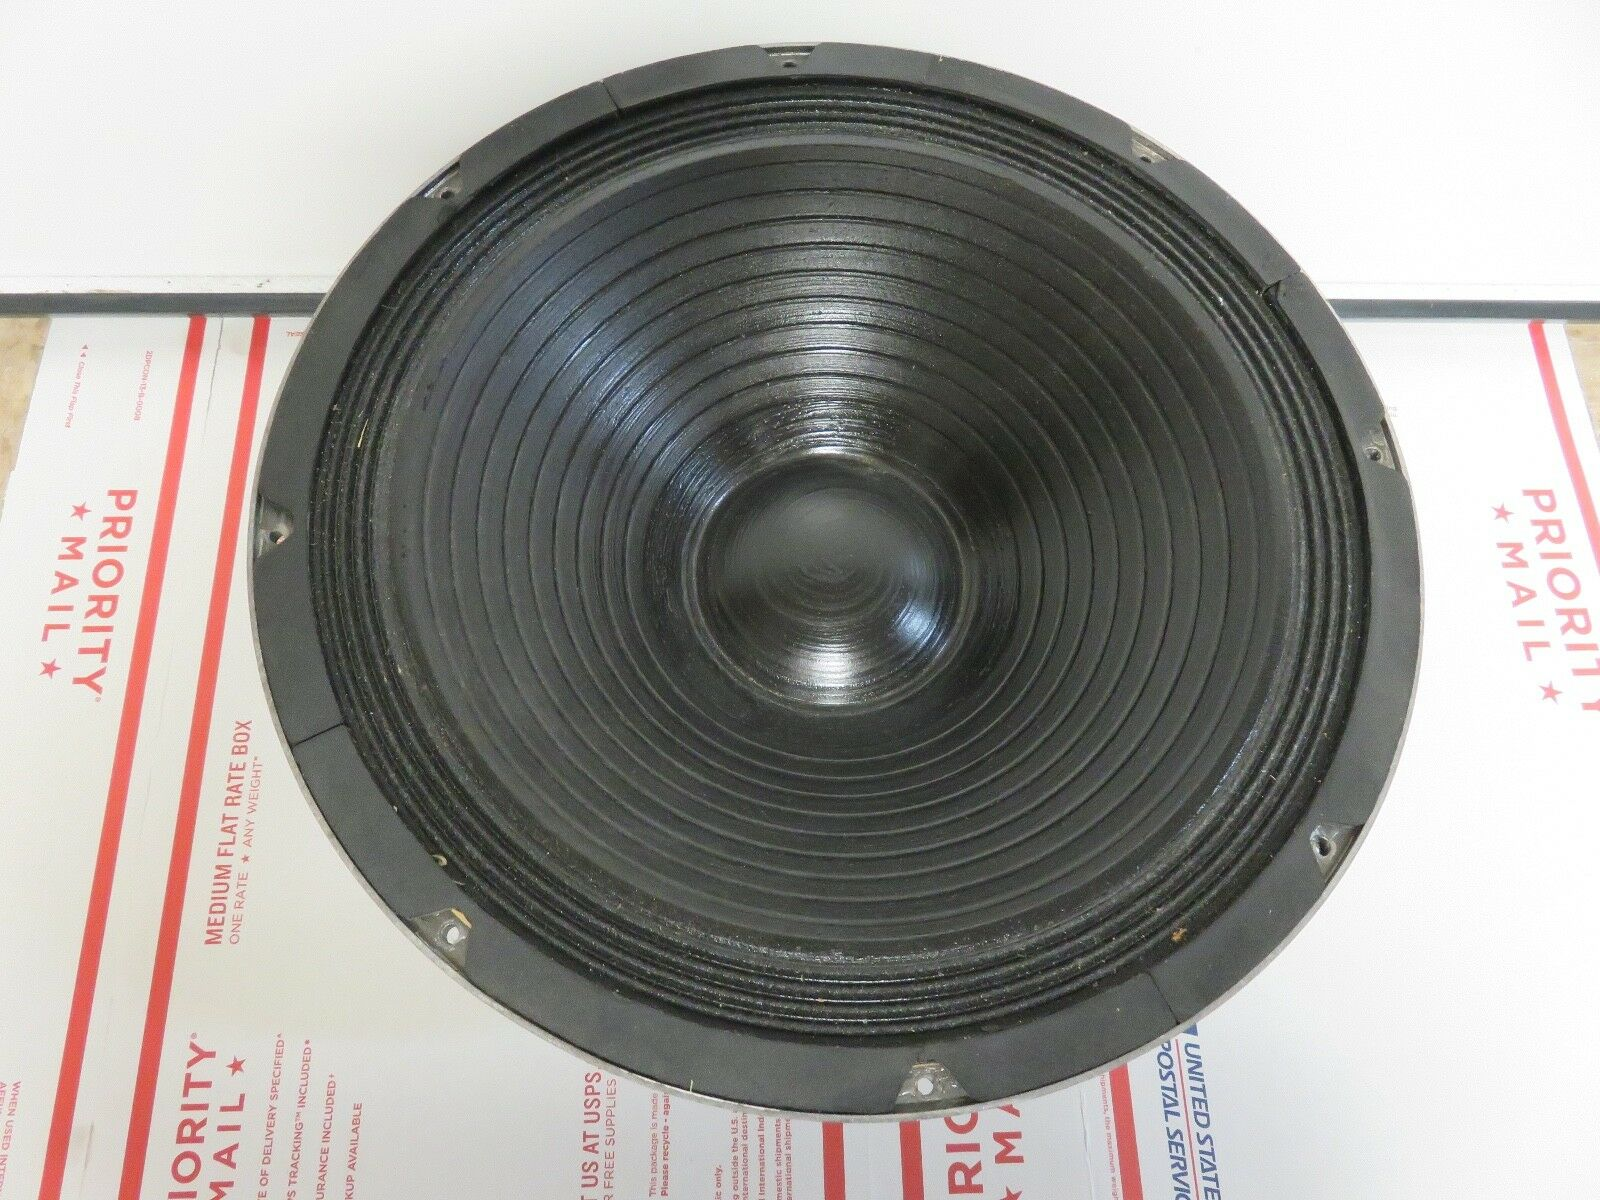 Meyer Sound MS 415 HTS 15  Low Frequency Driver 4 OHMs (From Meyer Sound PSW-6)